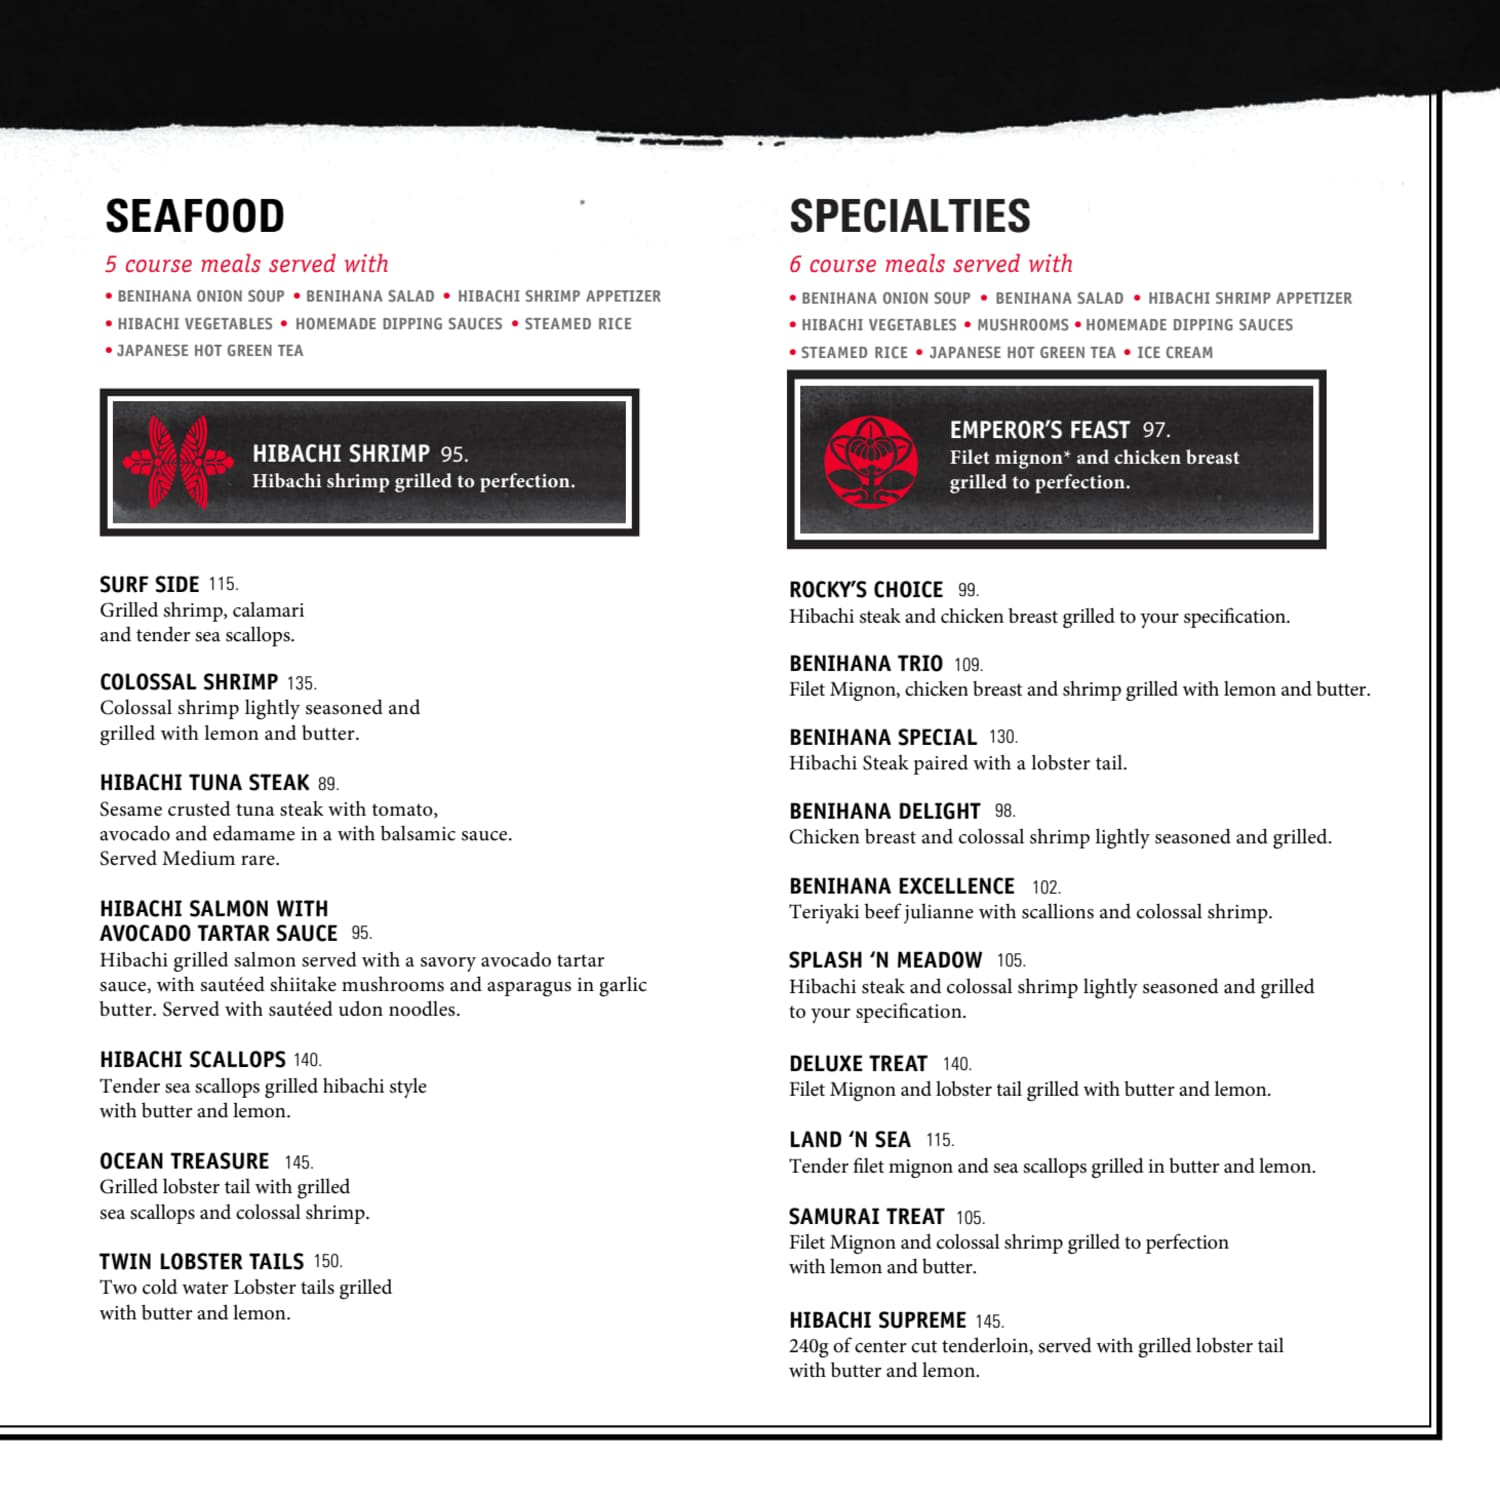 Menu do restaurante Benihana - Página 13